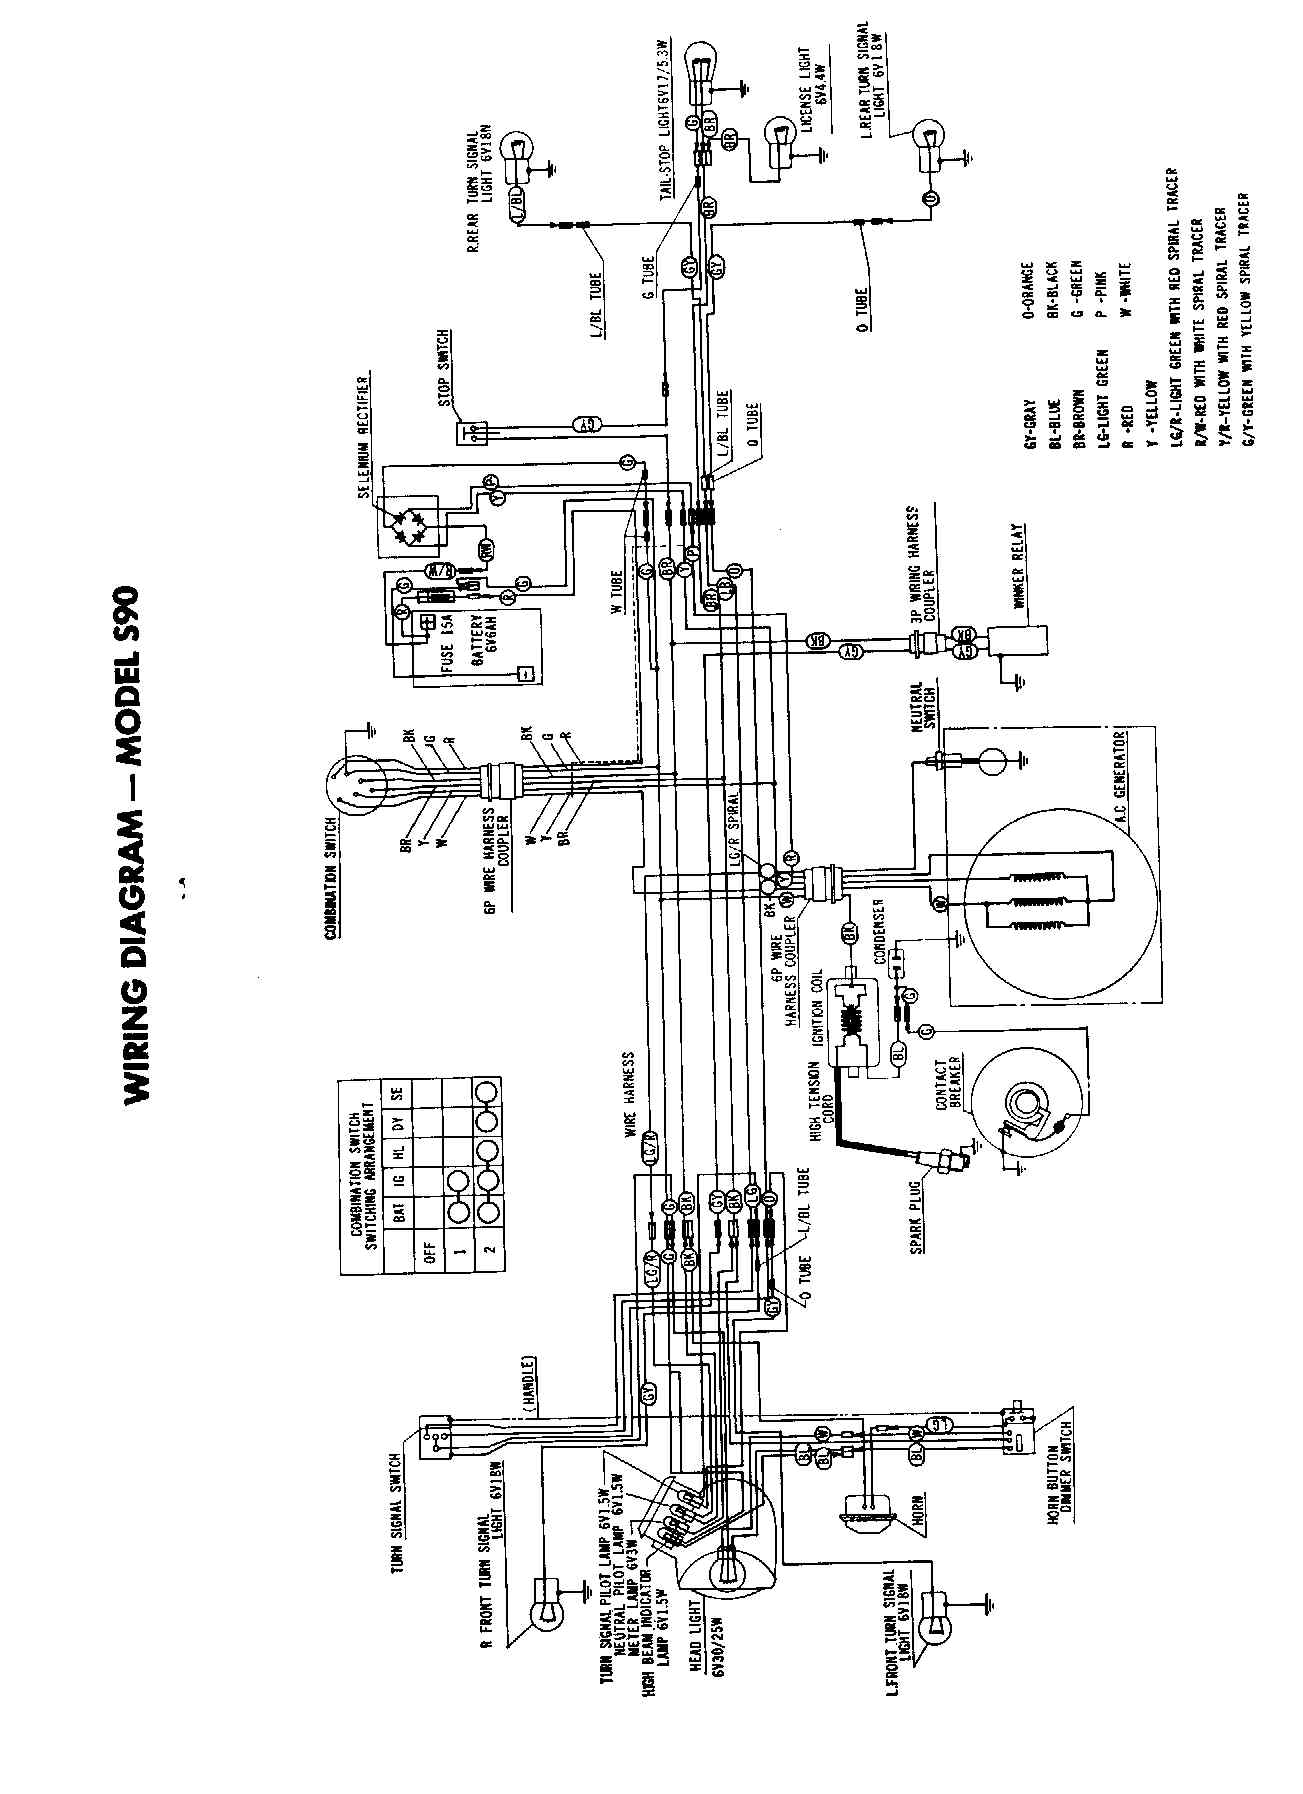 [WRG-9367] Xr200r Wiring Diagram